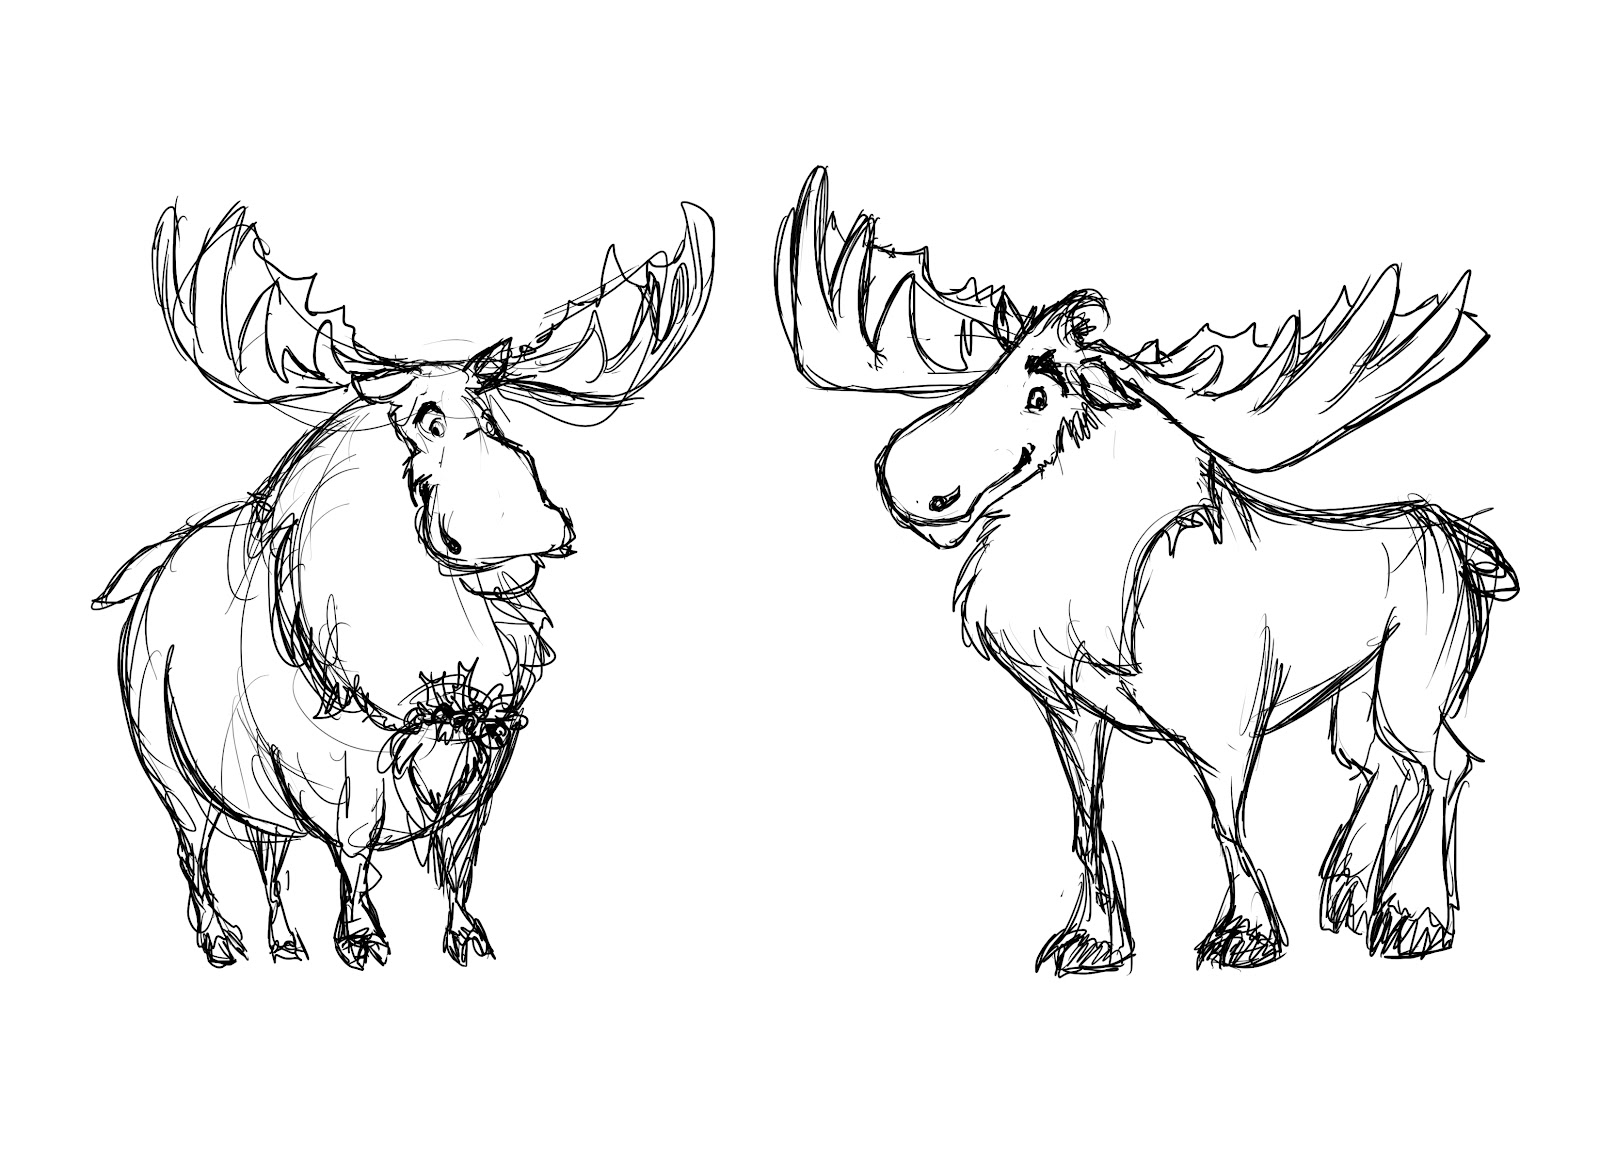 Elora 39 s sketchcan meese moose moxen for How to draw a moos